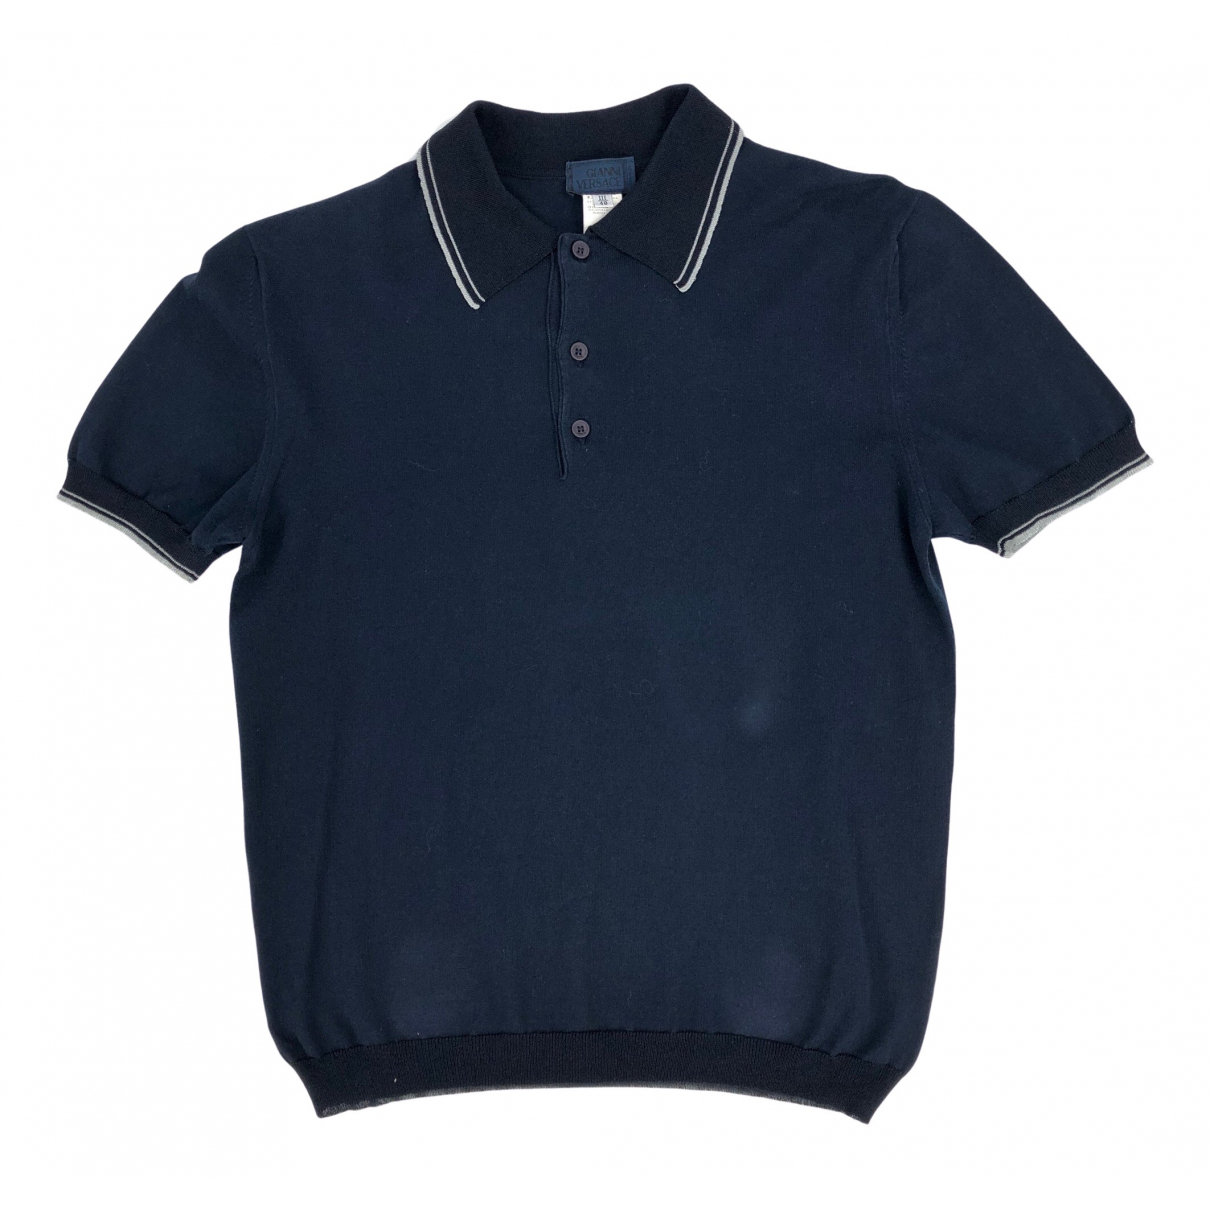 Gianni Versace \N Navy Cotton Polo shirts for Men S International